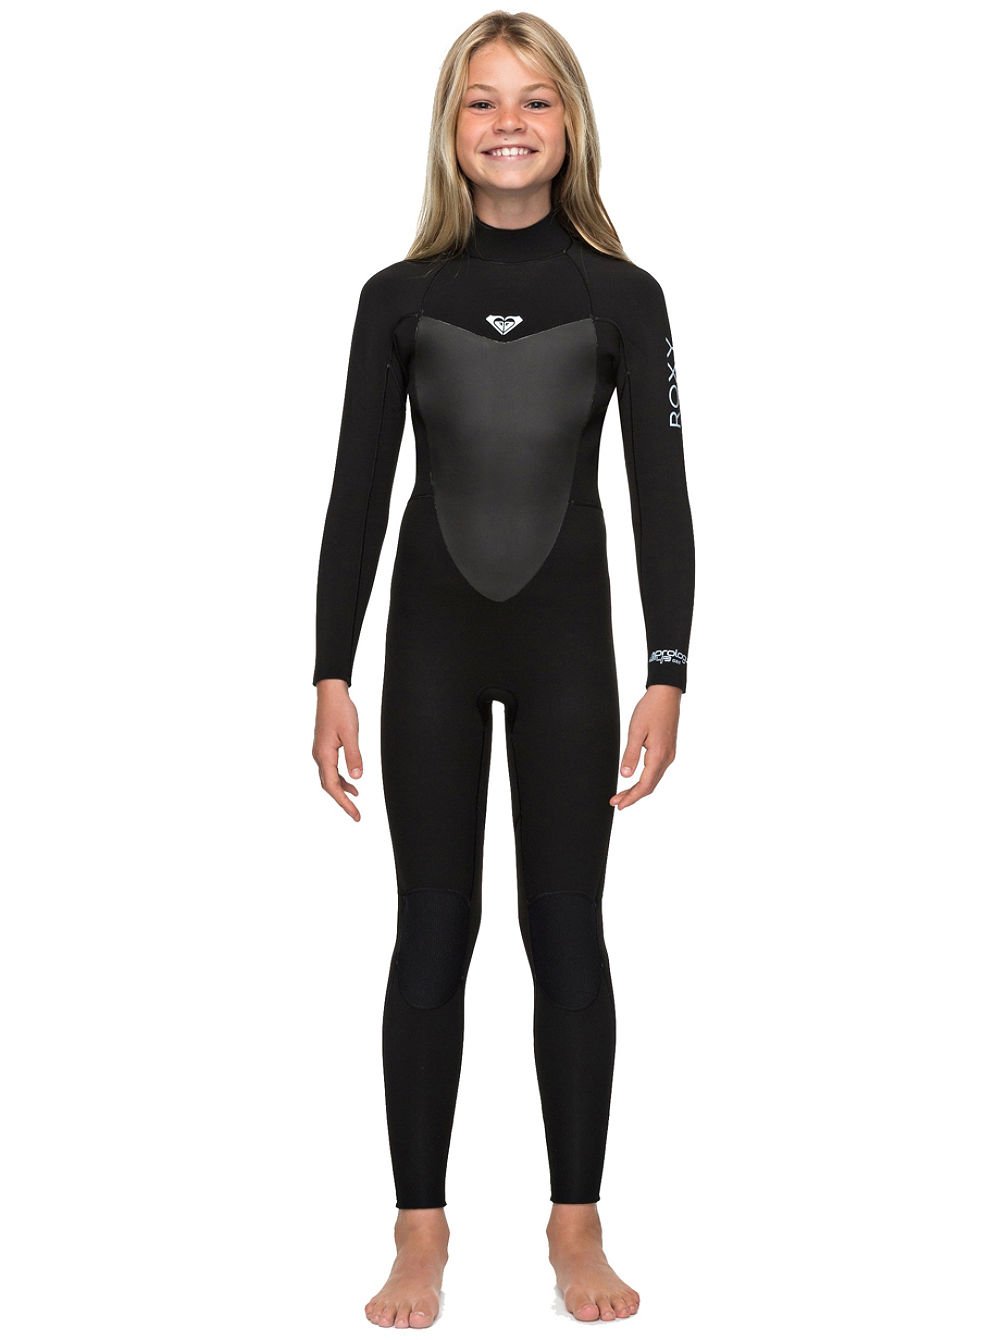 cdc4b37e24 Buy Roxy 4 3 Prologue Back Zip Gbs Wetsuit Girls online at blue ...